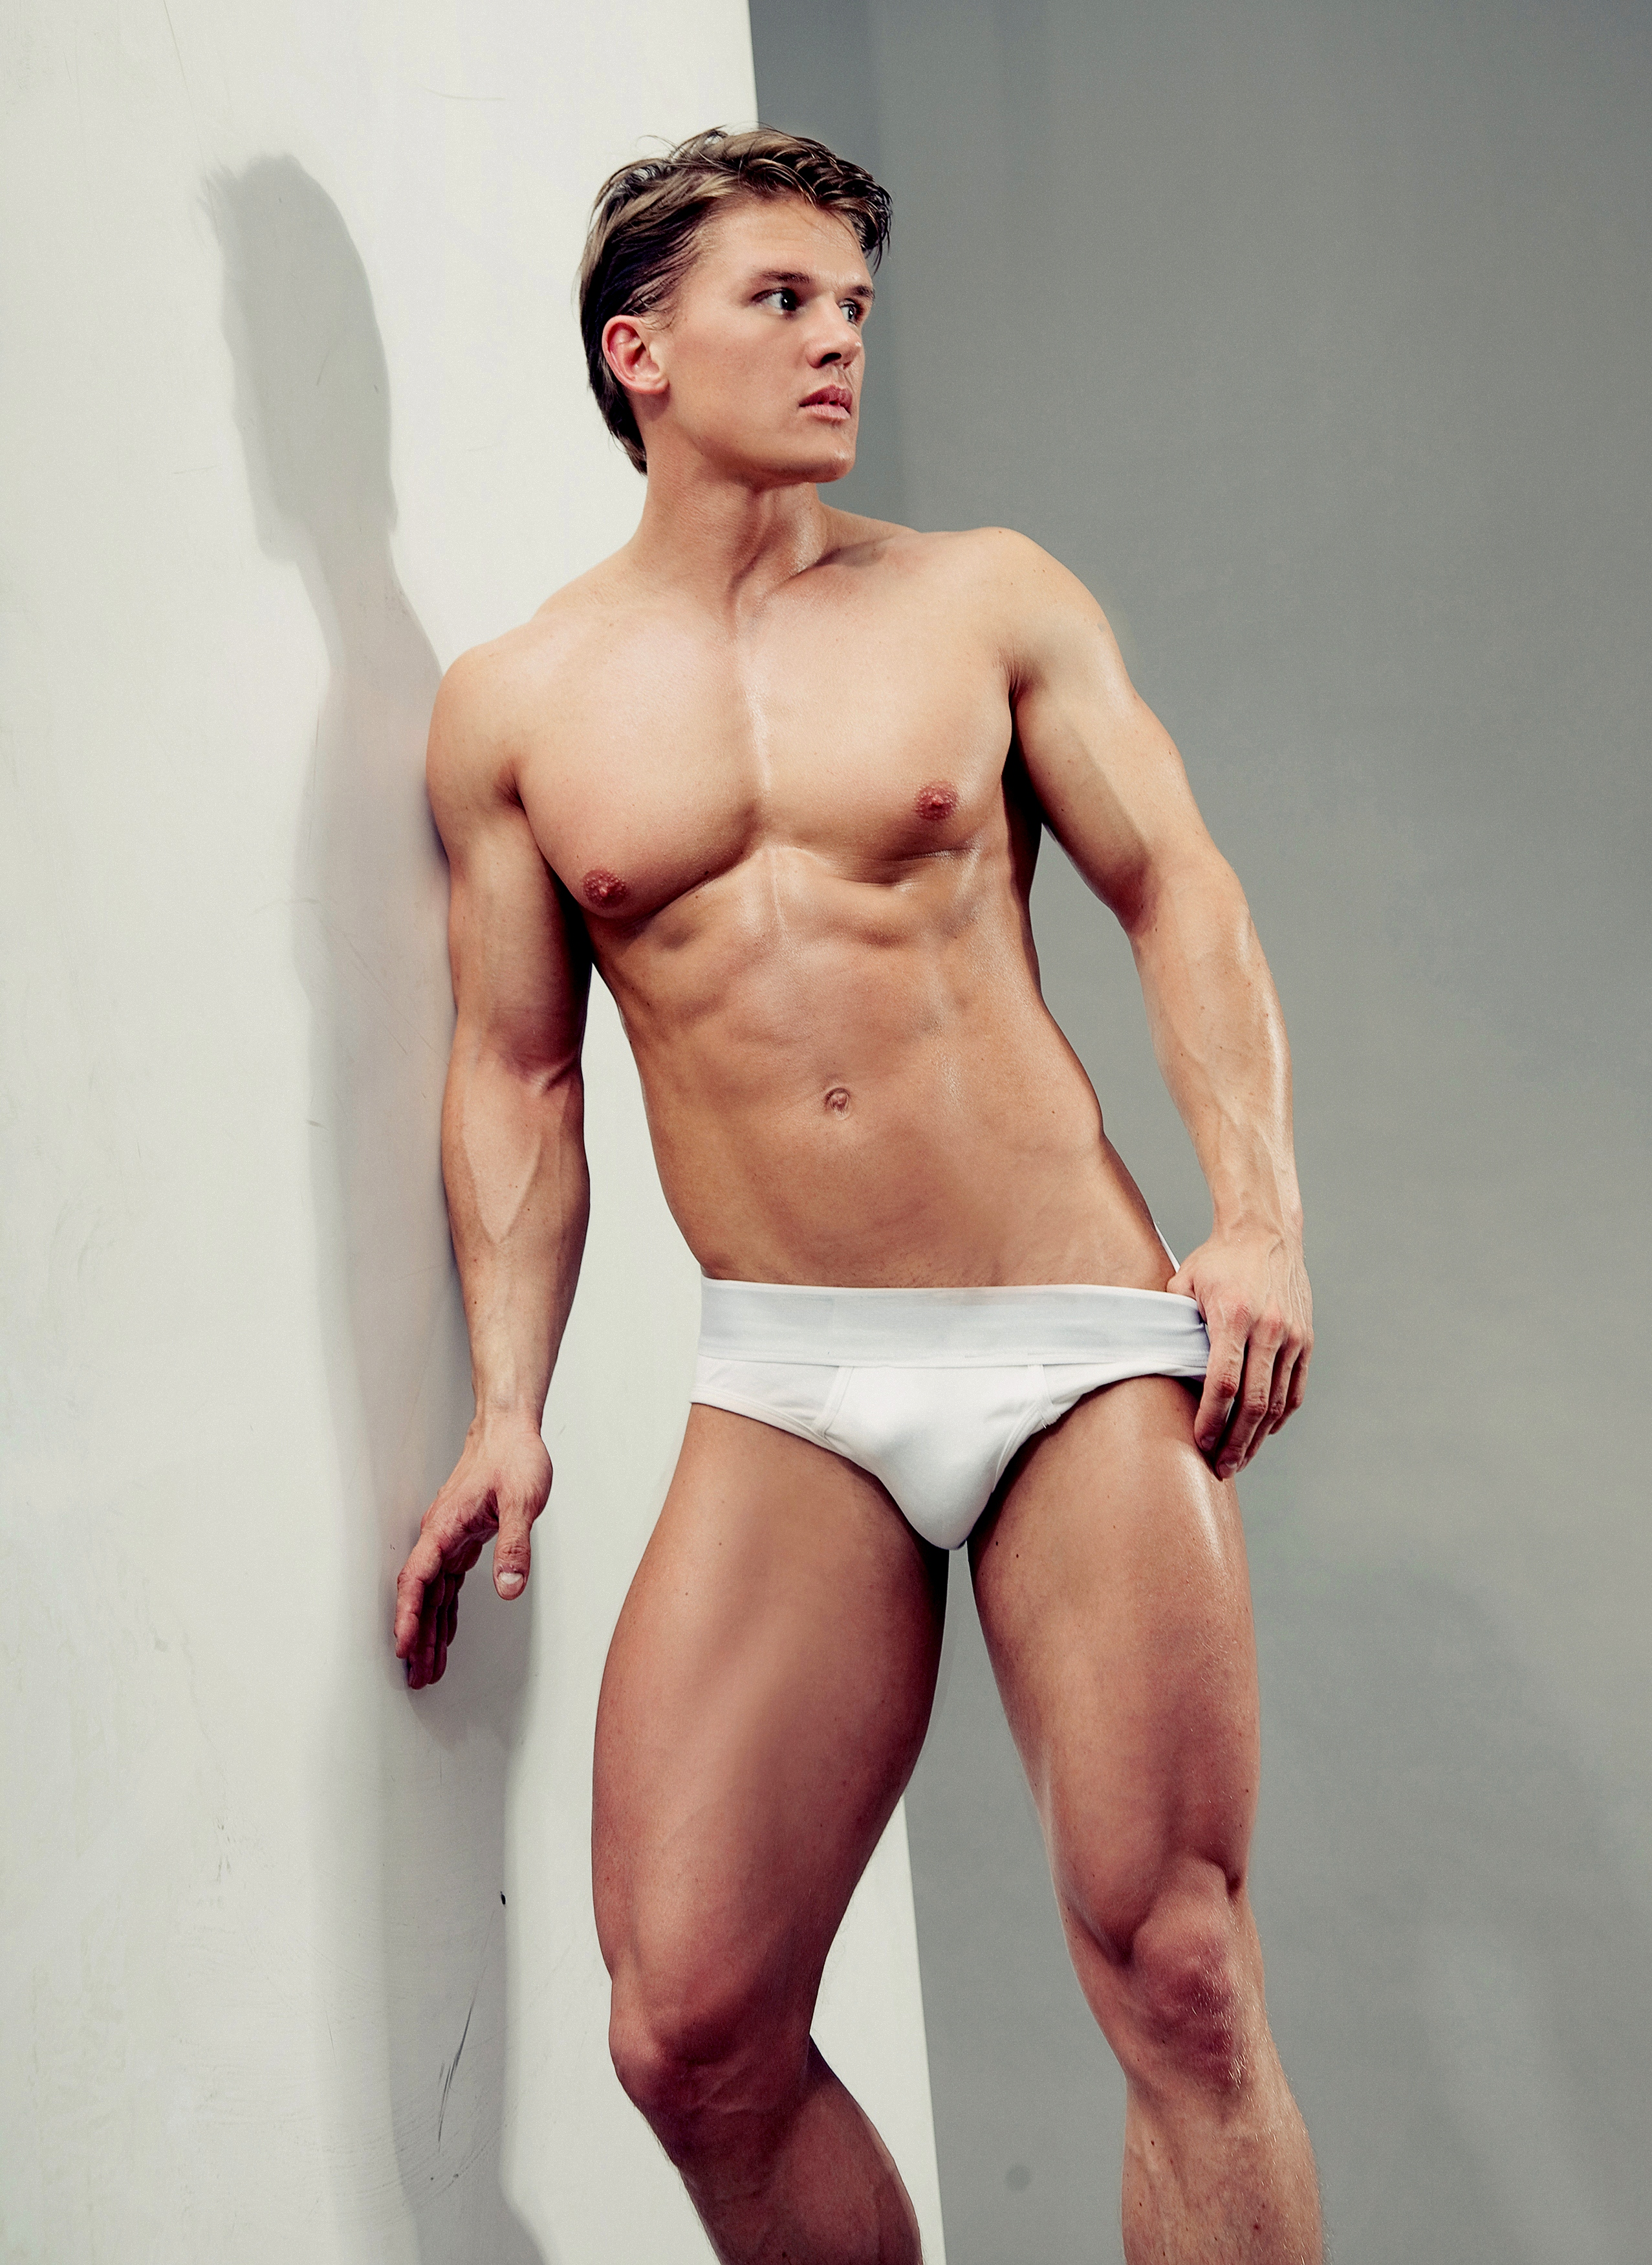 Guys In Underwear, Supreme Muscle Growth, Homens Men Hombres, Male